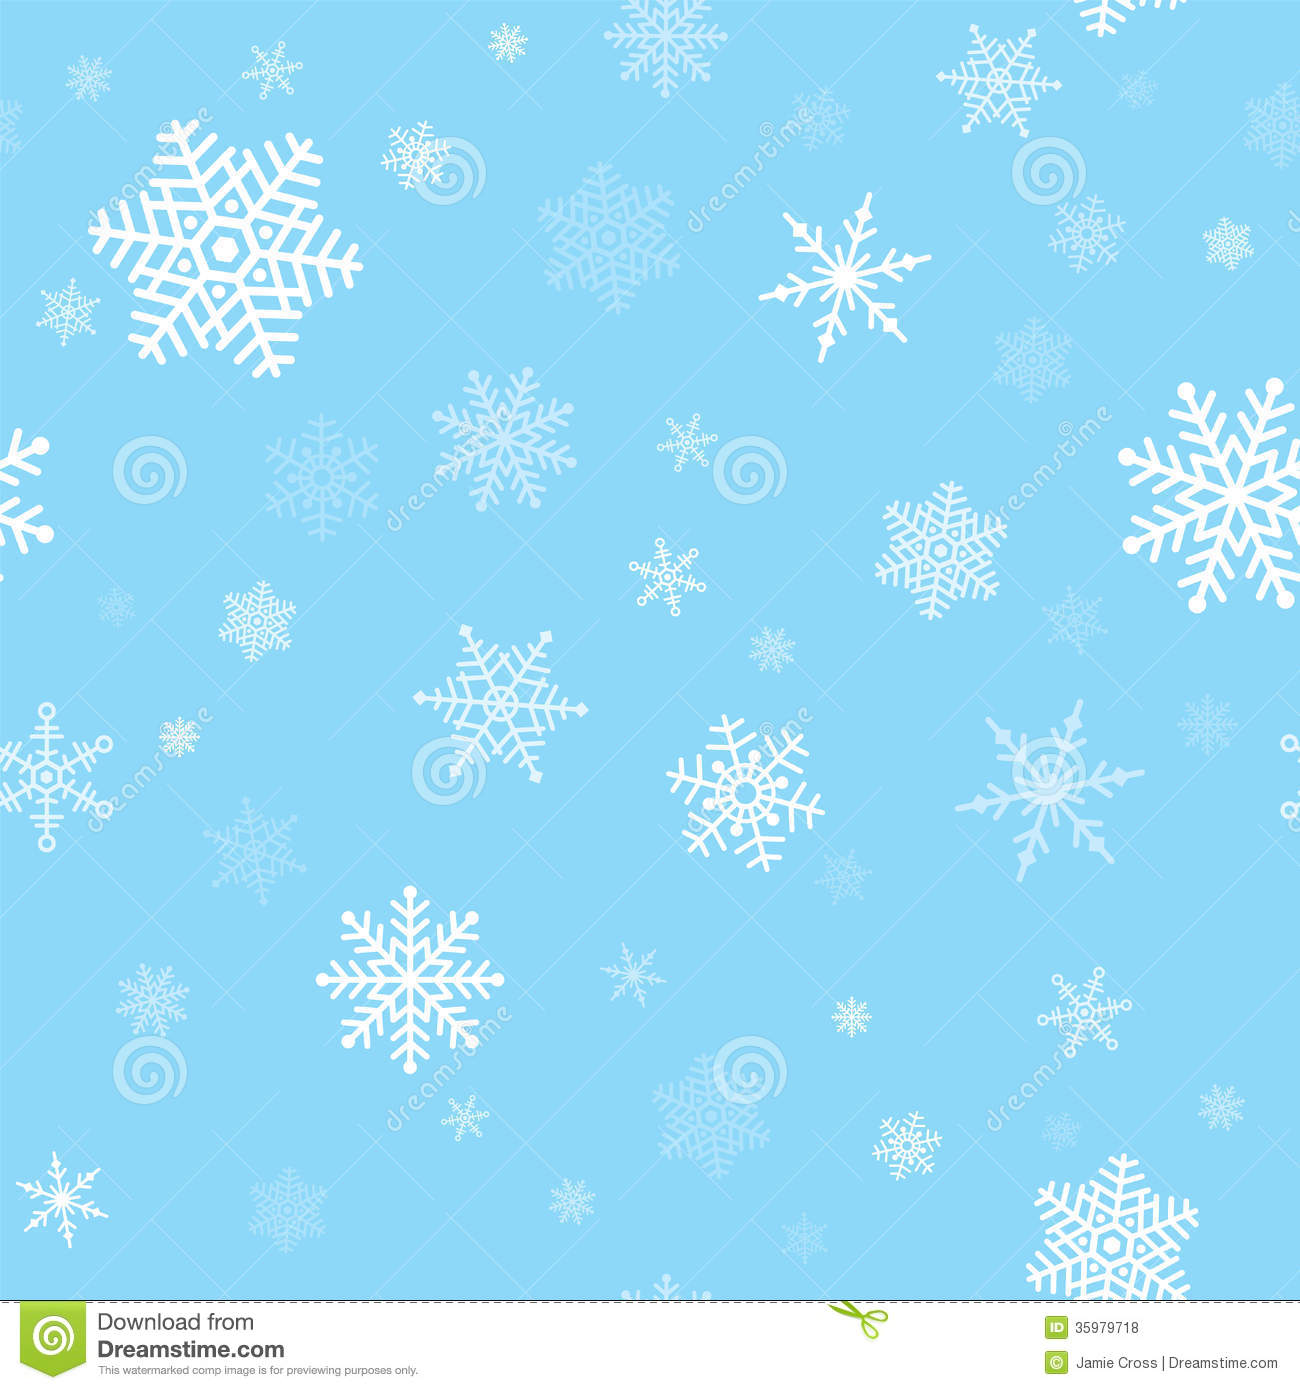 Free Download Of Christmas Wallpaper With Snow Falling Snowflakes Seamless Pattern Royalty Free Stock Photos